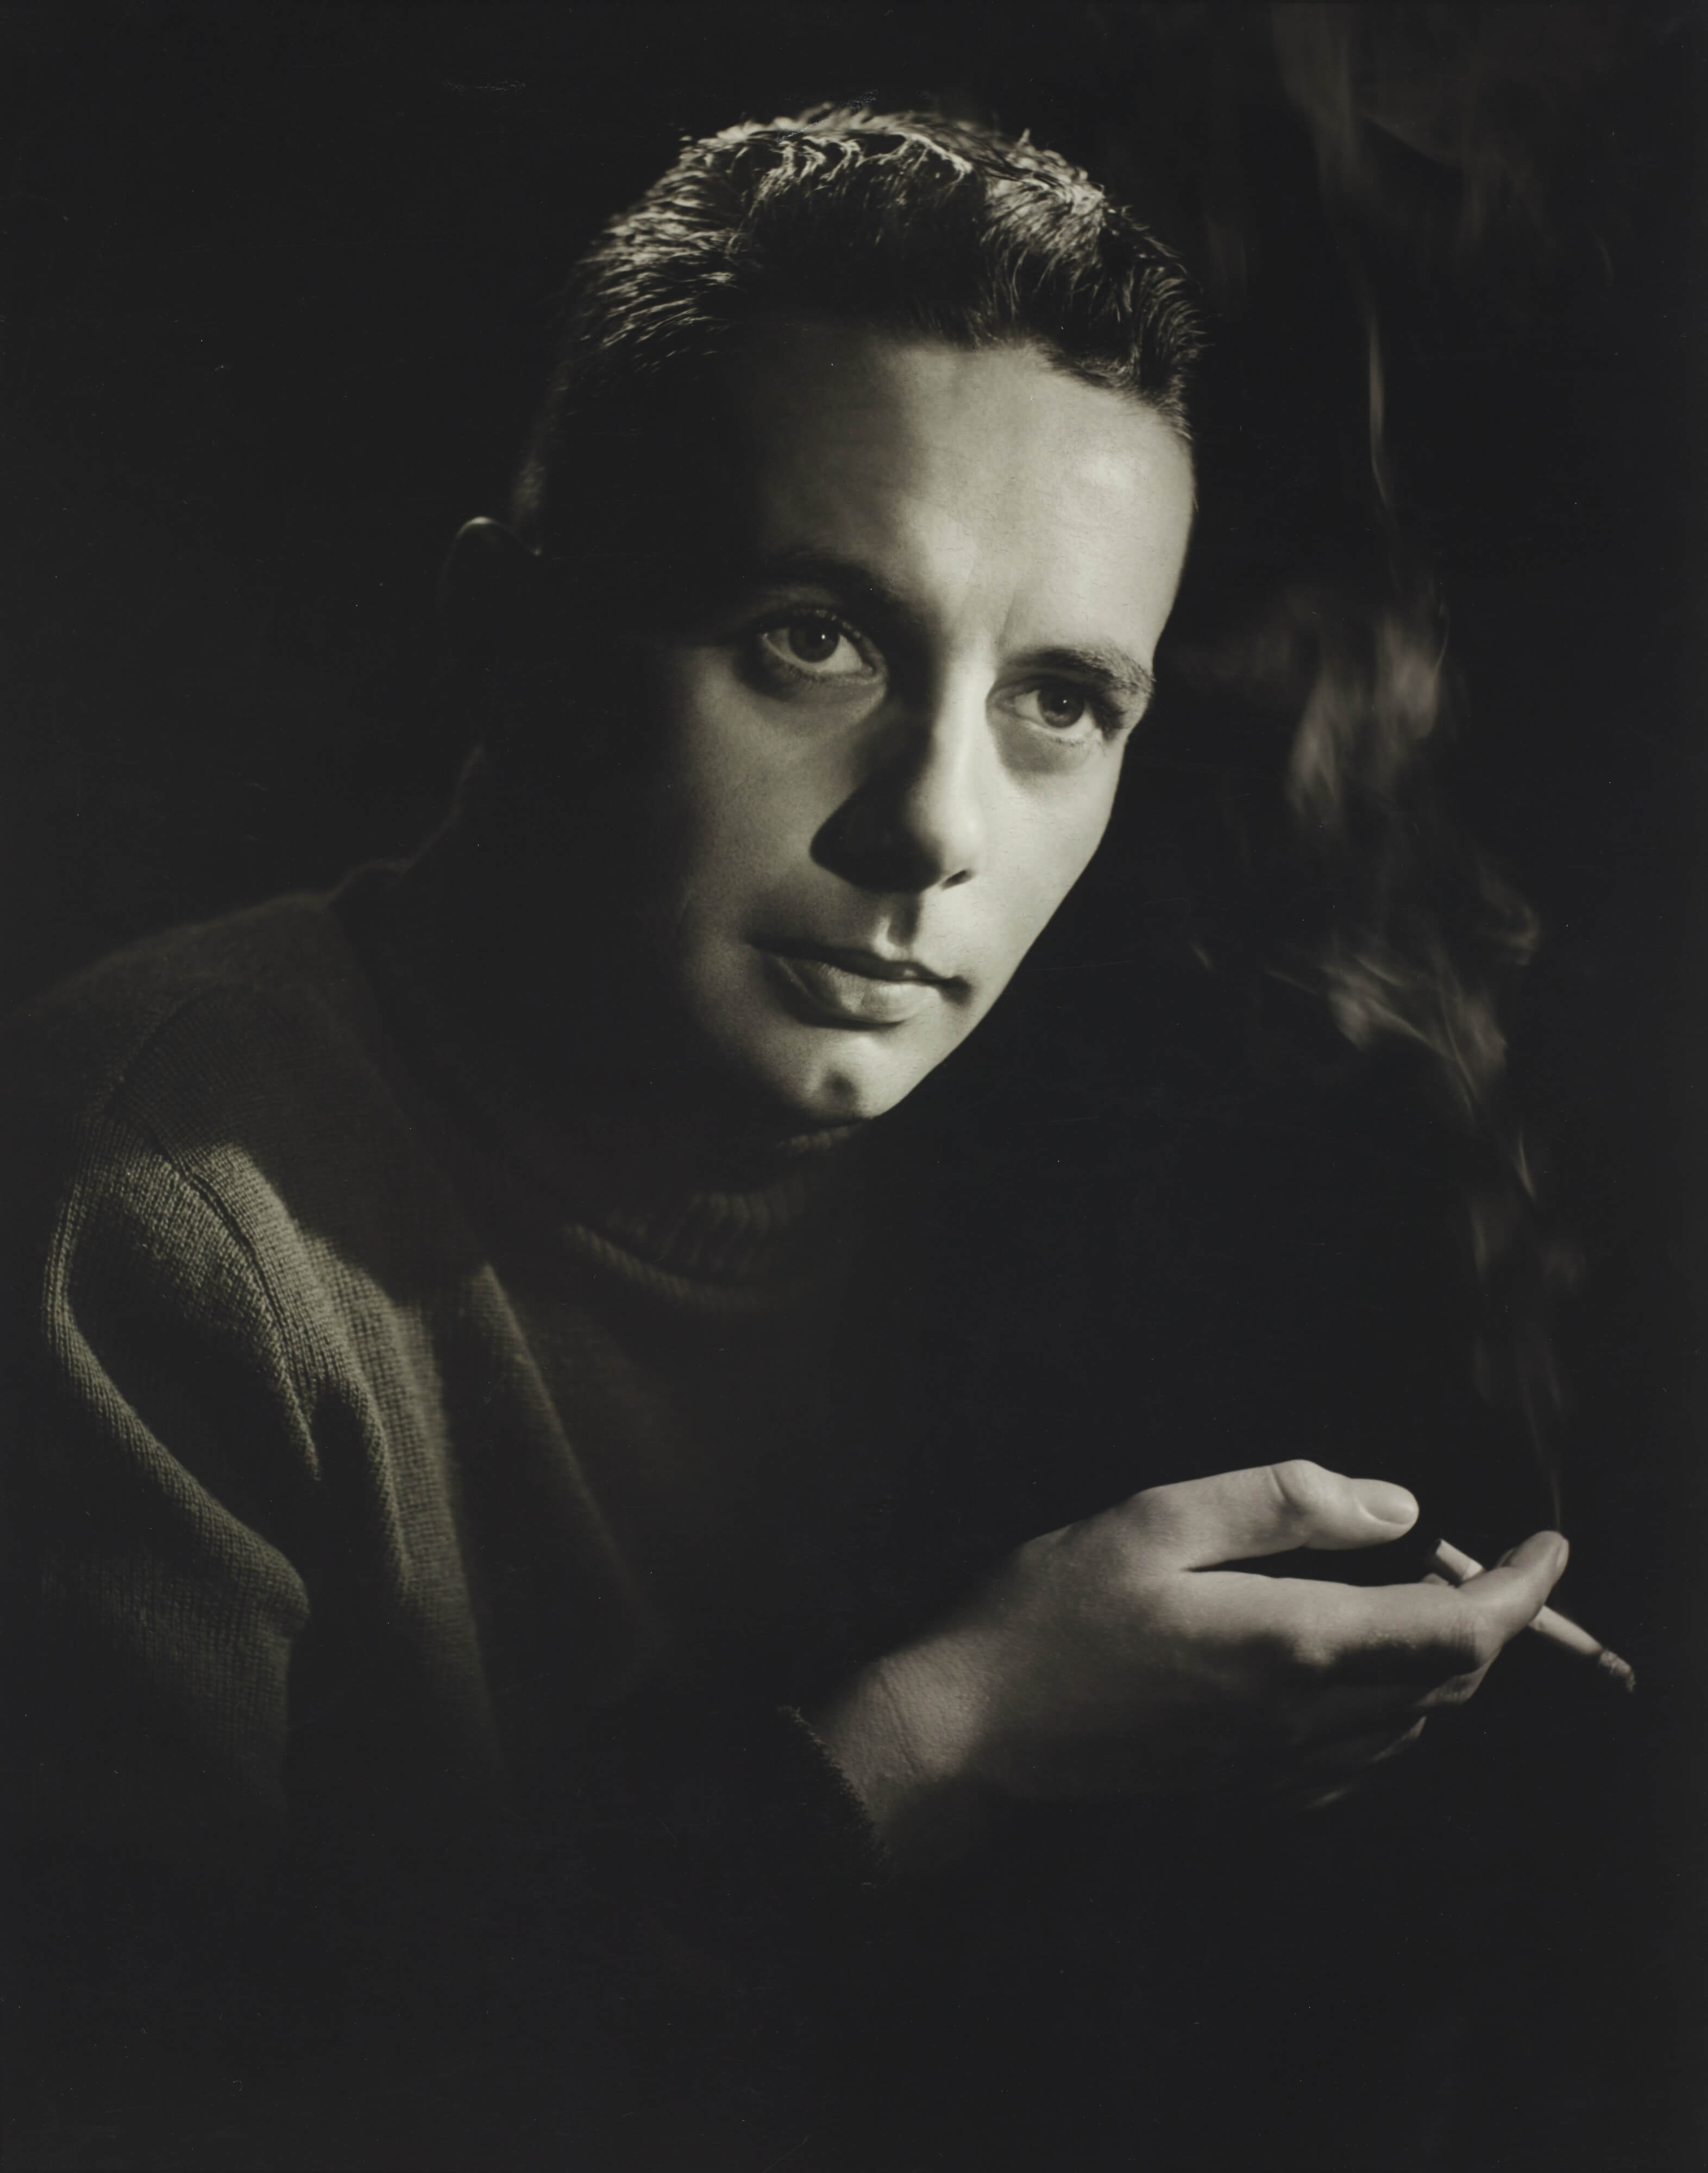 Peter Waller, Spencer Digby Studios, Portrait of a man smoking, c.1950. Spencer Digby / Ronald D Woolf Collection. Gift of Ronald Woolf, 1975. Te Papa